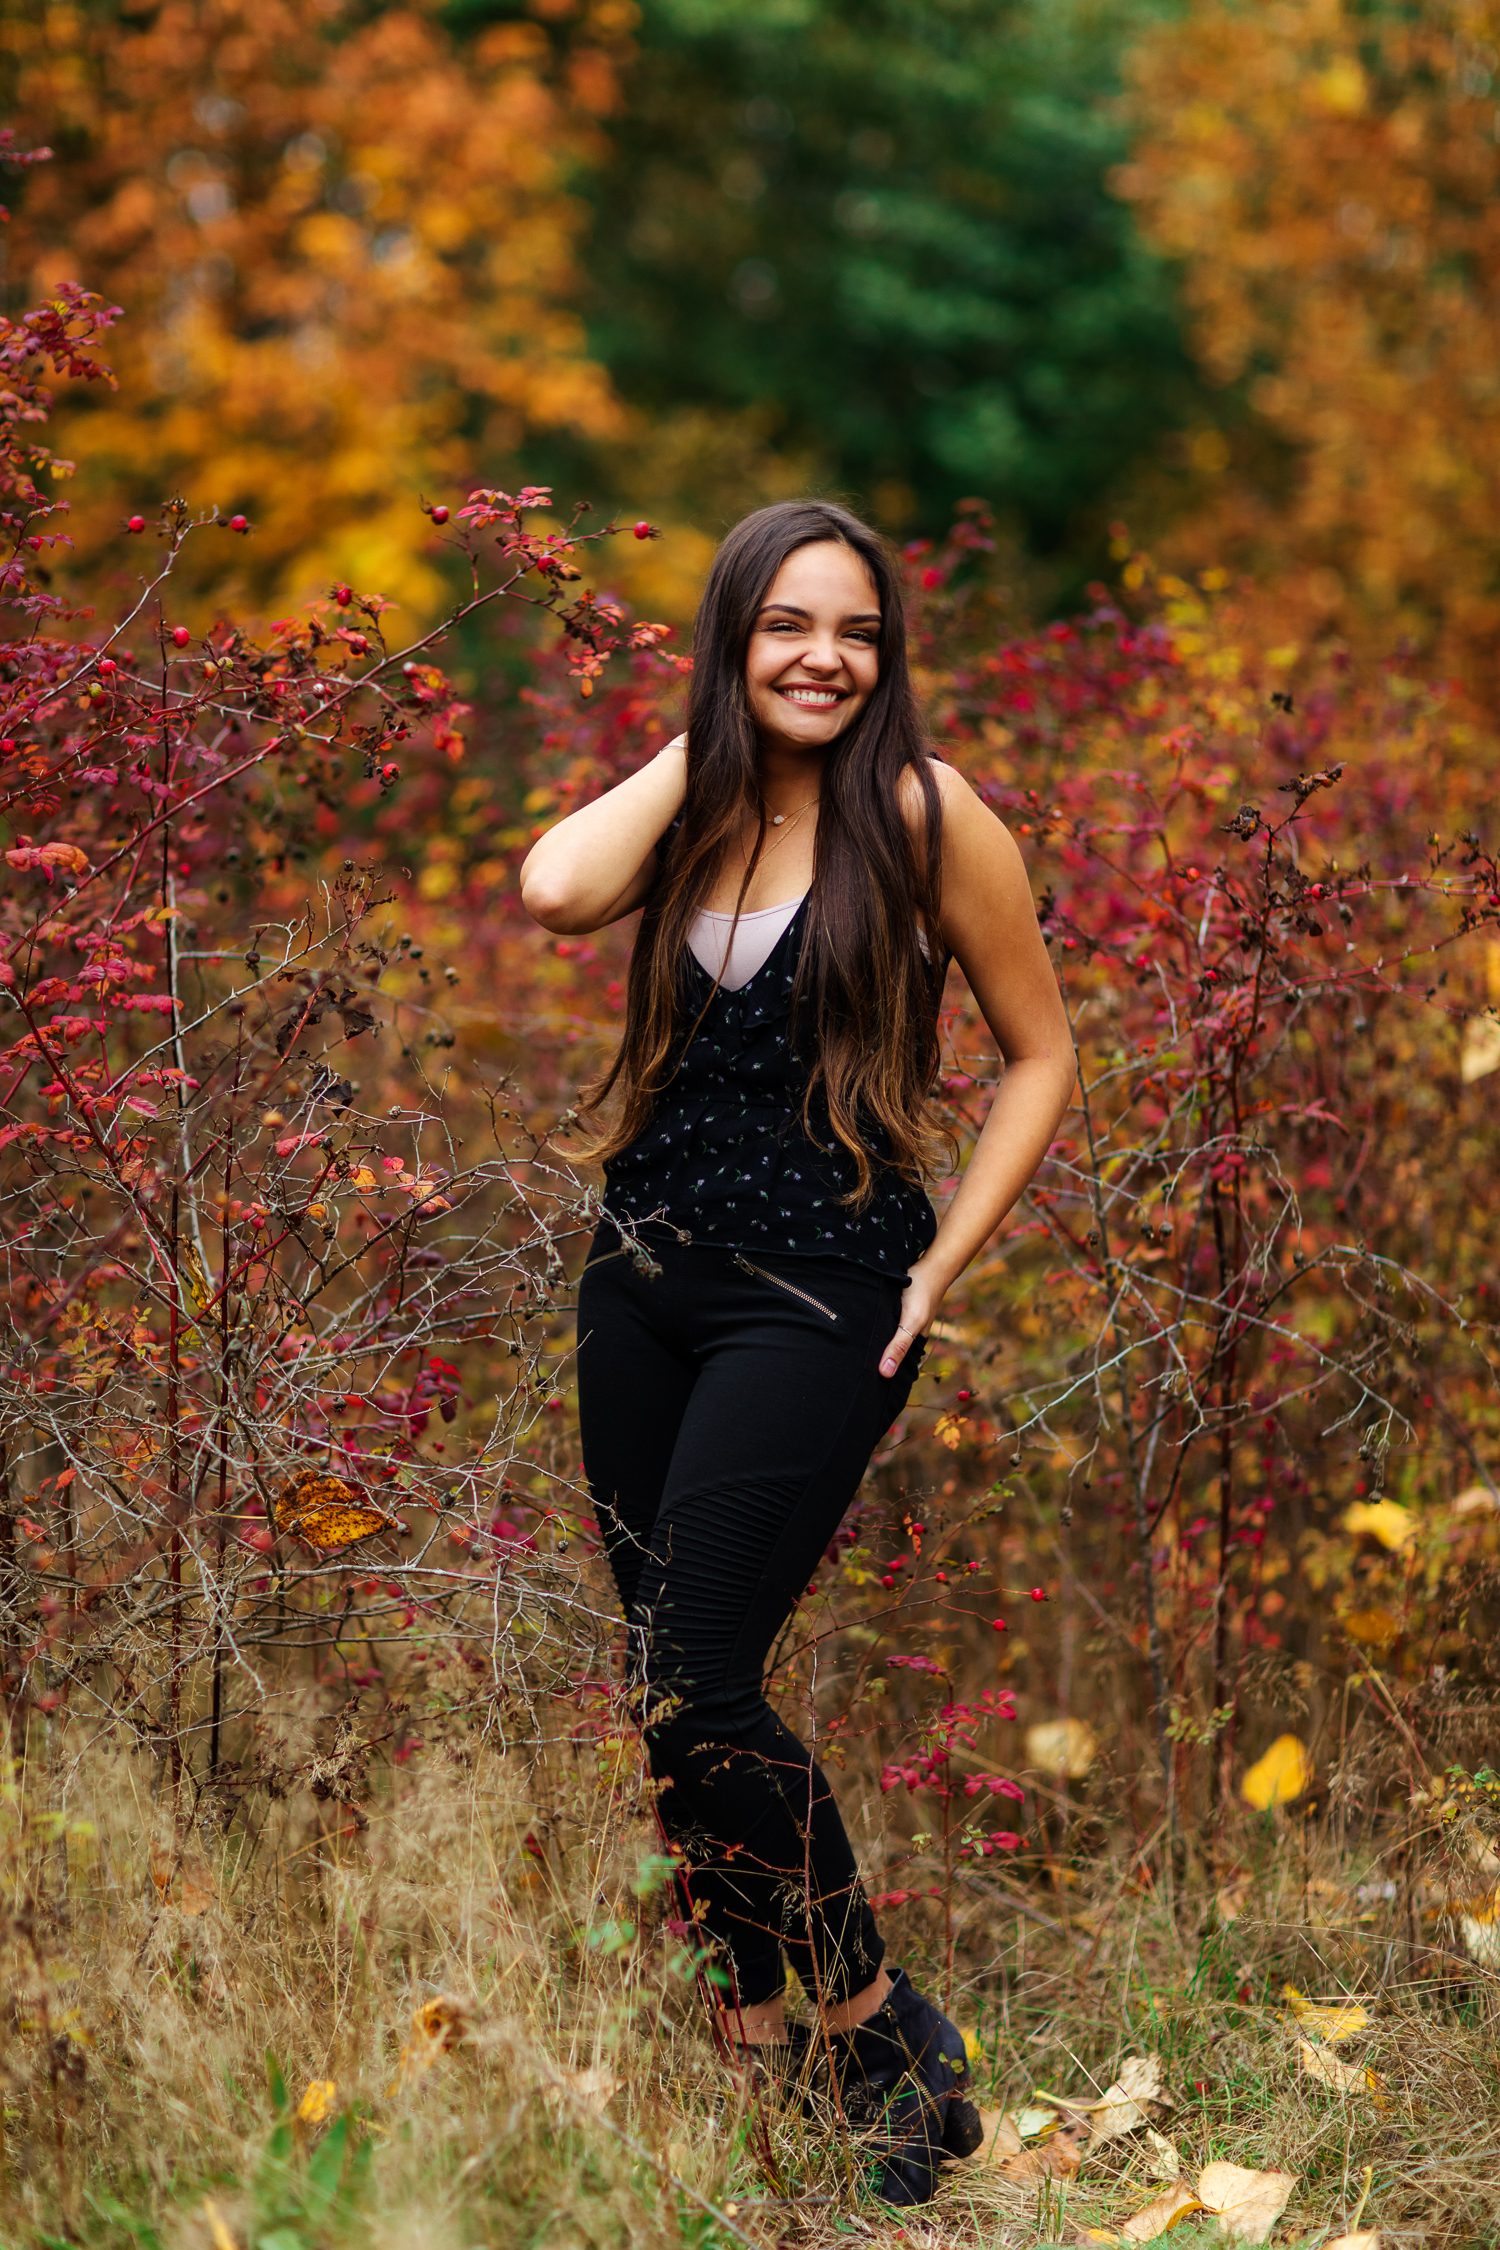 ariellanoellephotography-portraiture-highschool-senior-photos-top-seattle-area-photographer-1-9.jpg